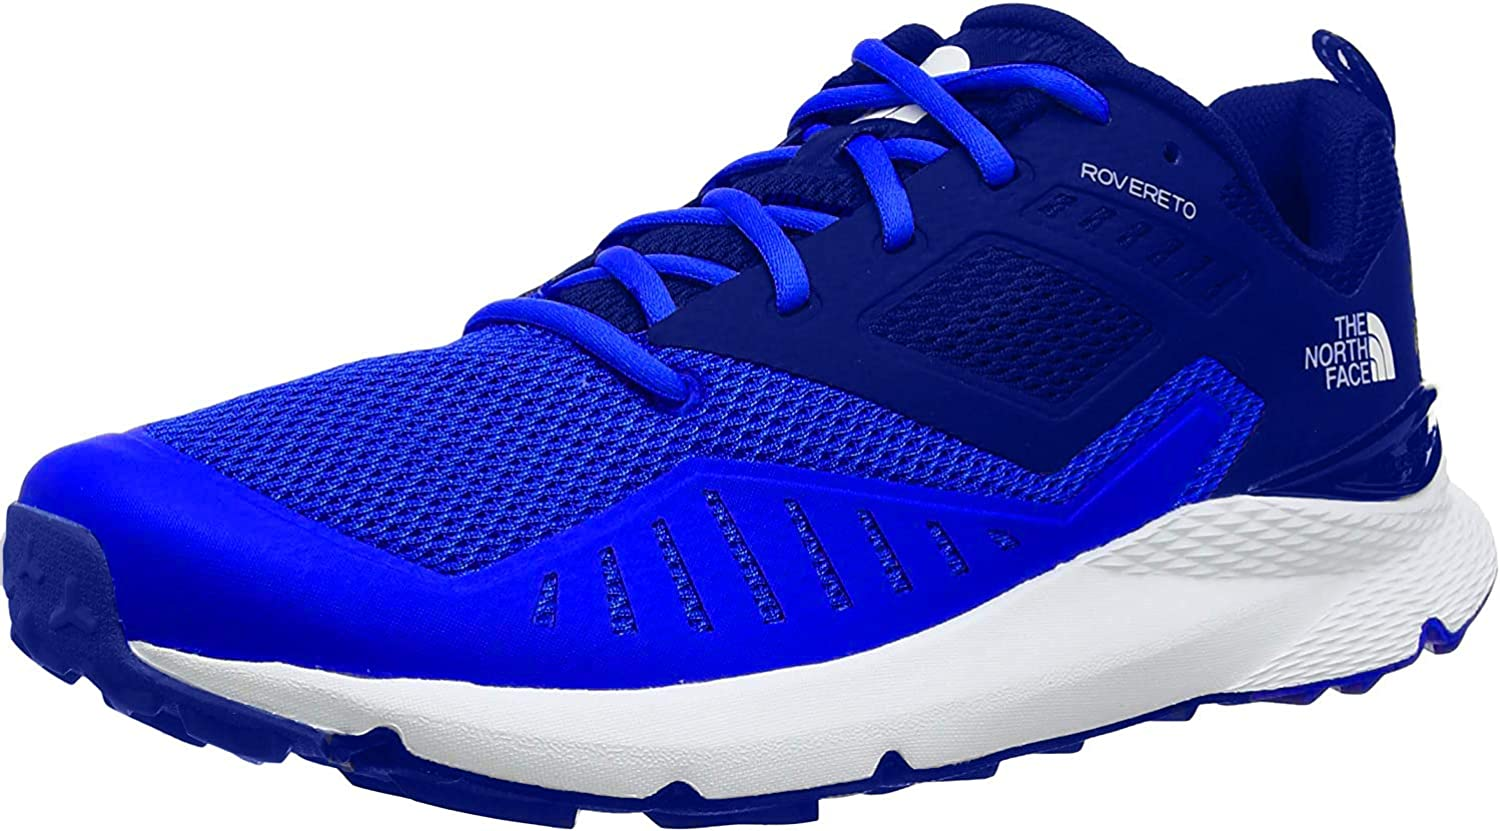 The North Face M Rovereto, Zapatillas de Running para Hombre ...